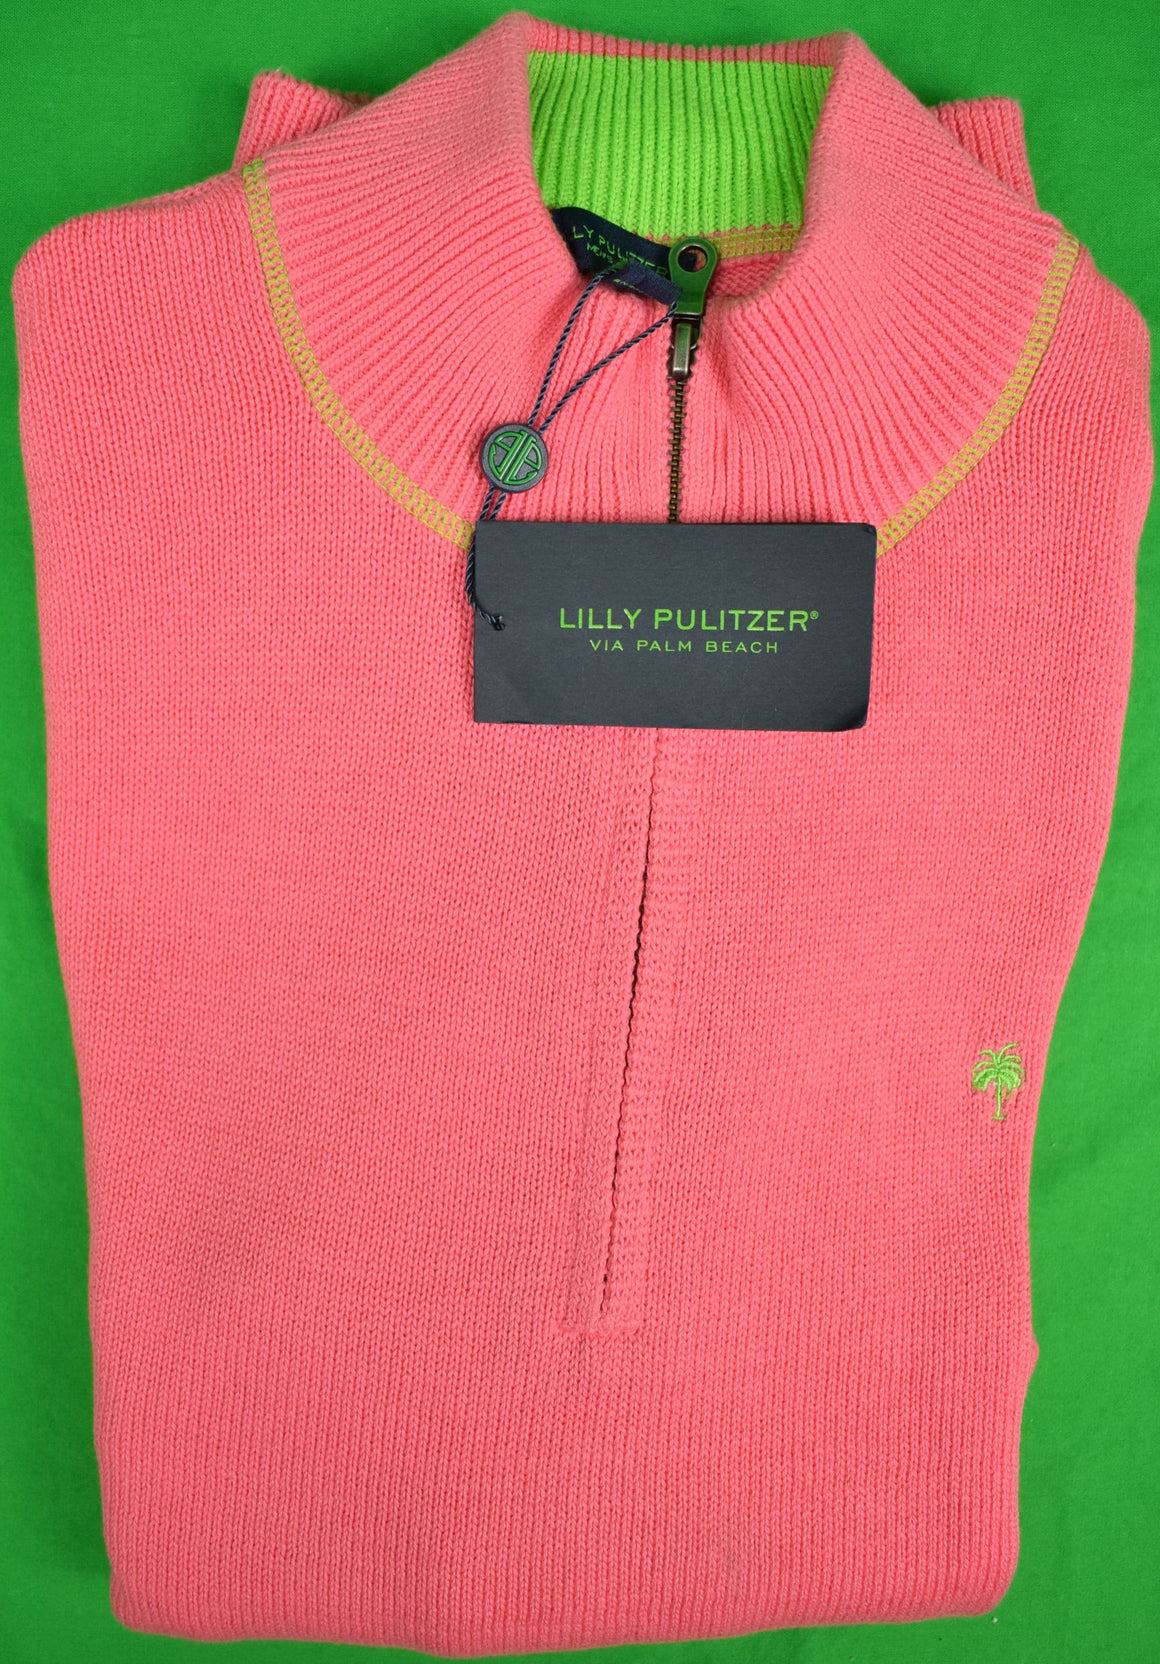 Lilly Pulitzer Hot Pink Salmon Men's Half-Zip Sweater Sz: L (New 'Deadstock' w/ Tags!) (Sold!)